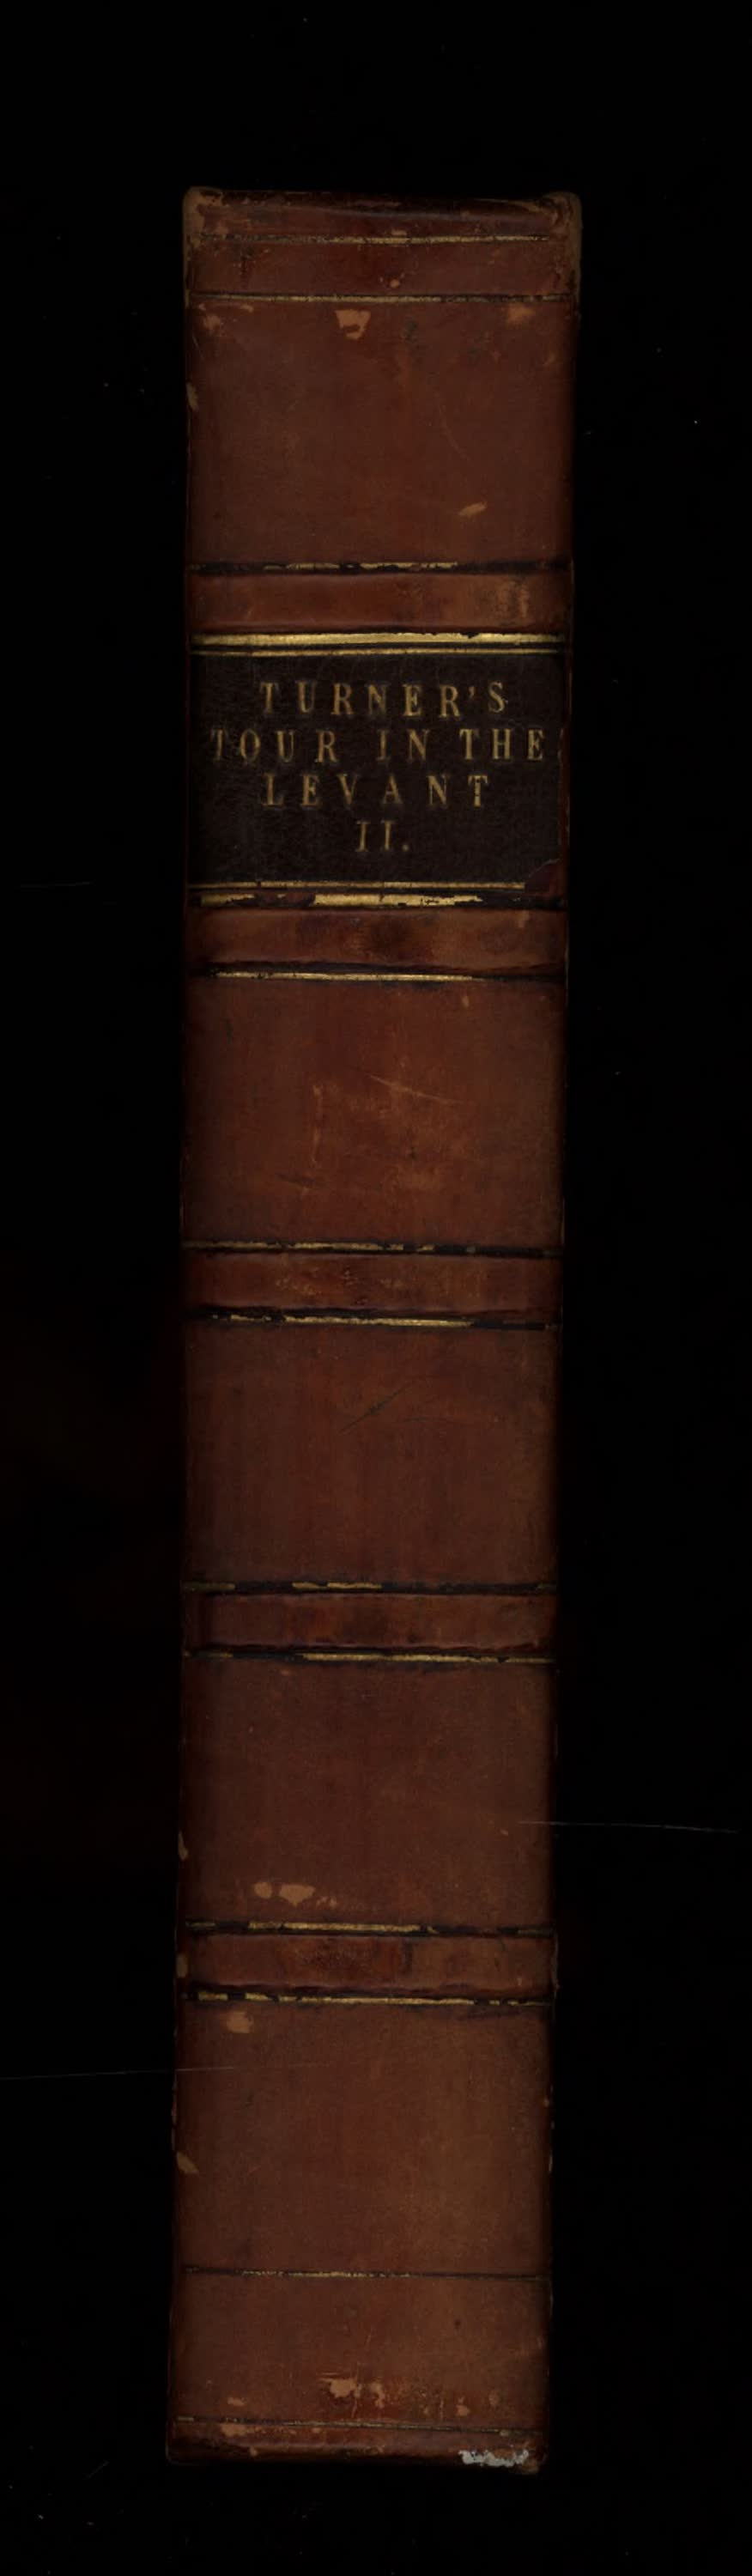 Journal of a Tour in the Levant Vol. 2 - Spine (1820)